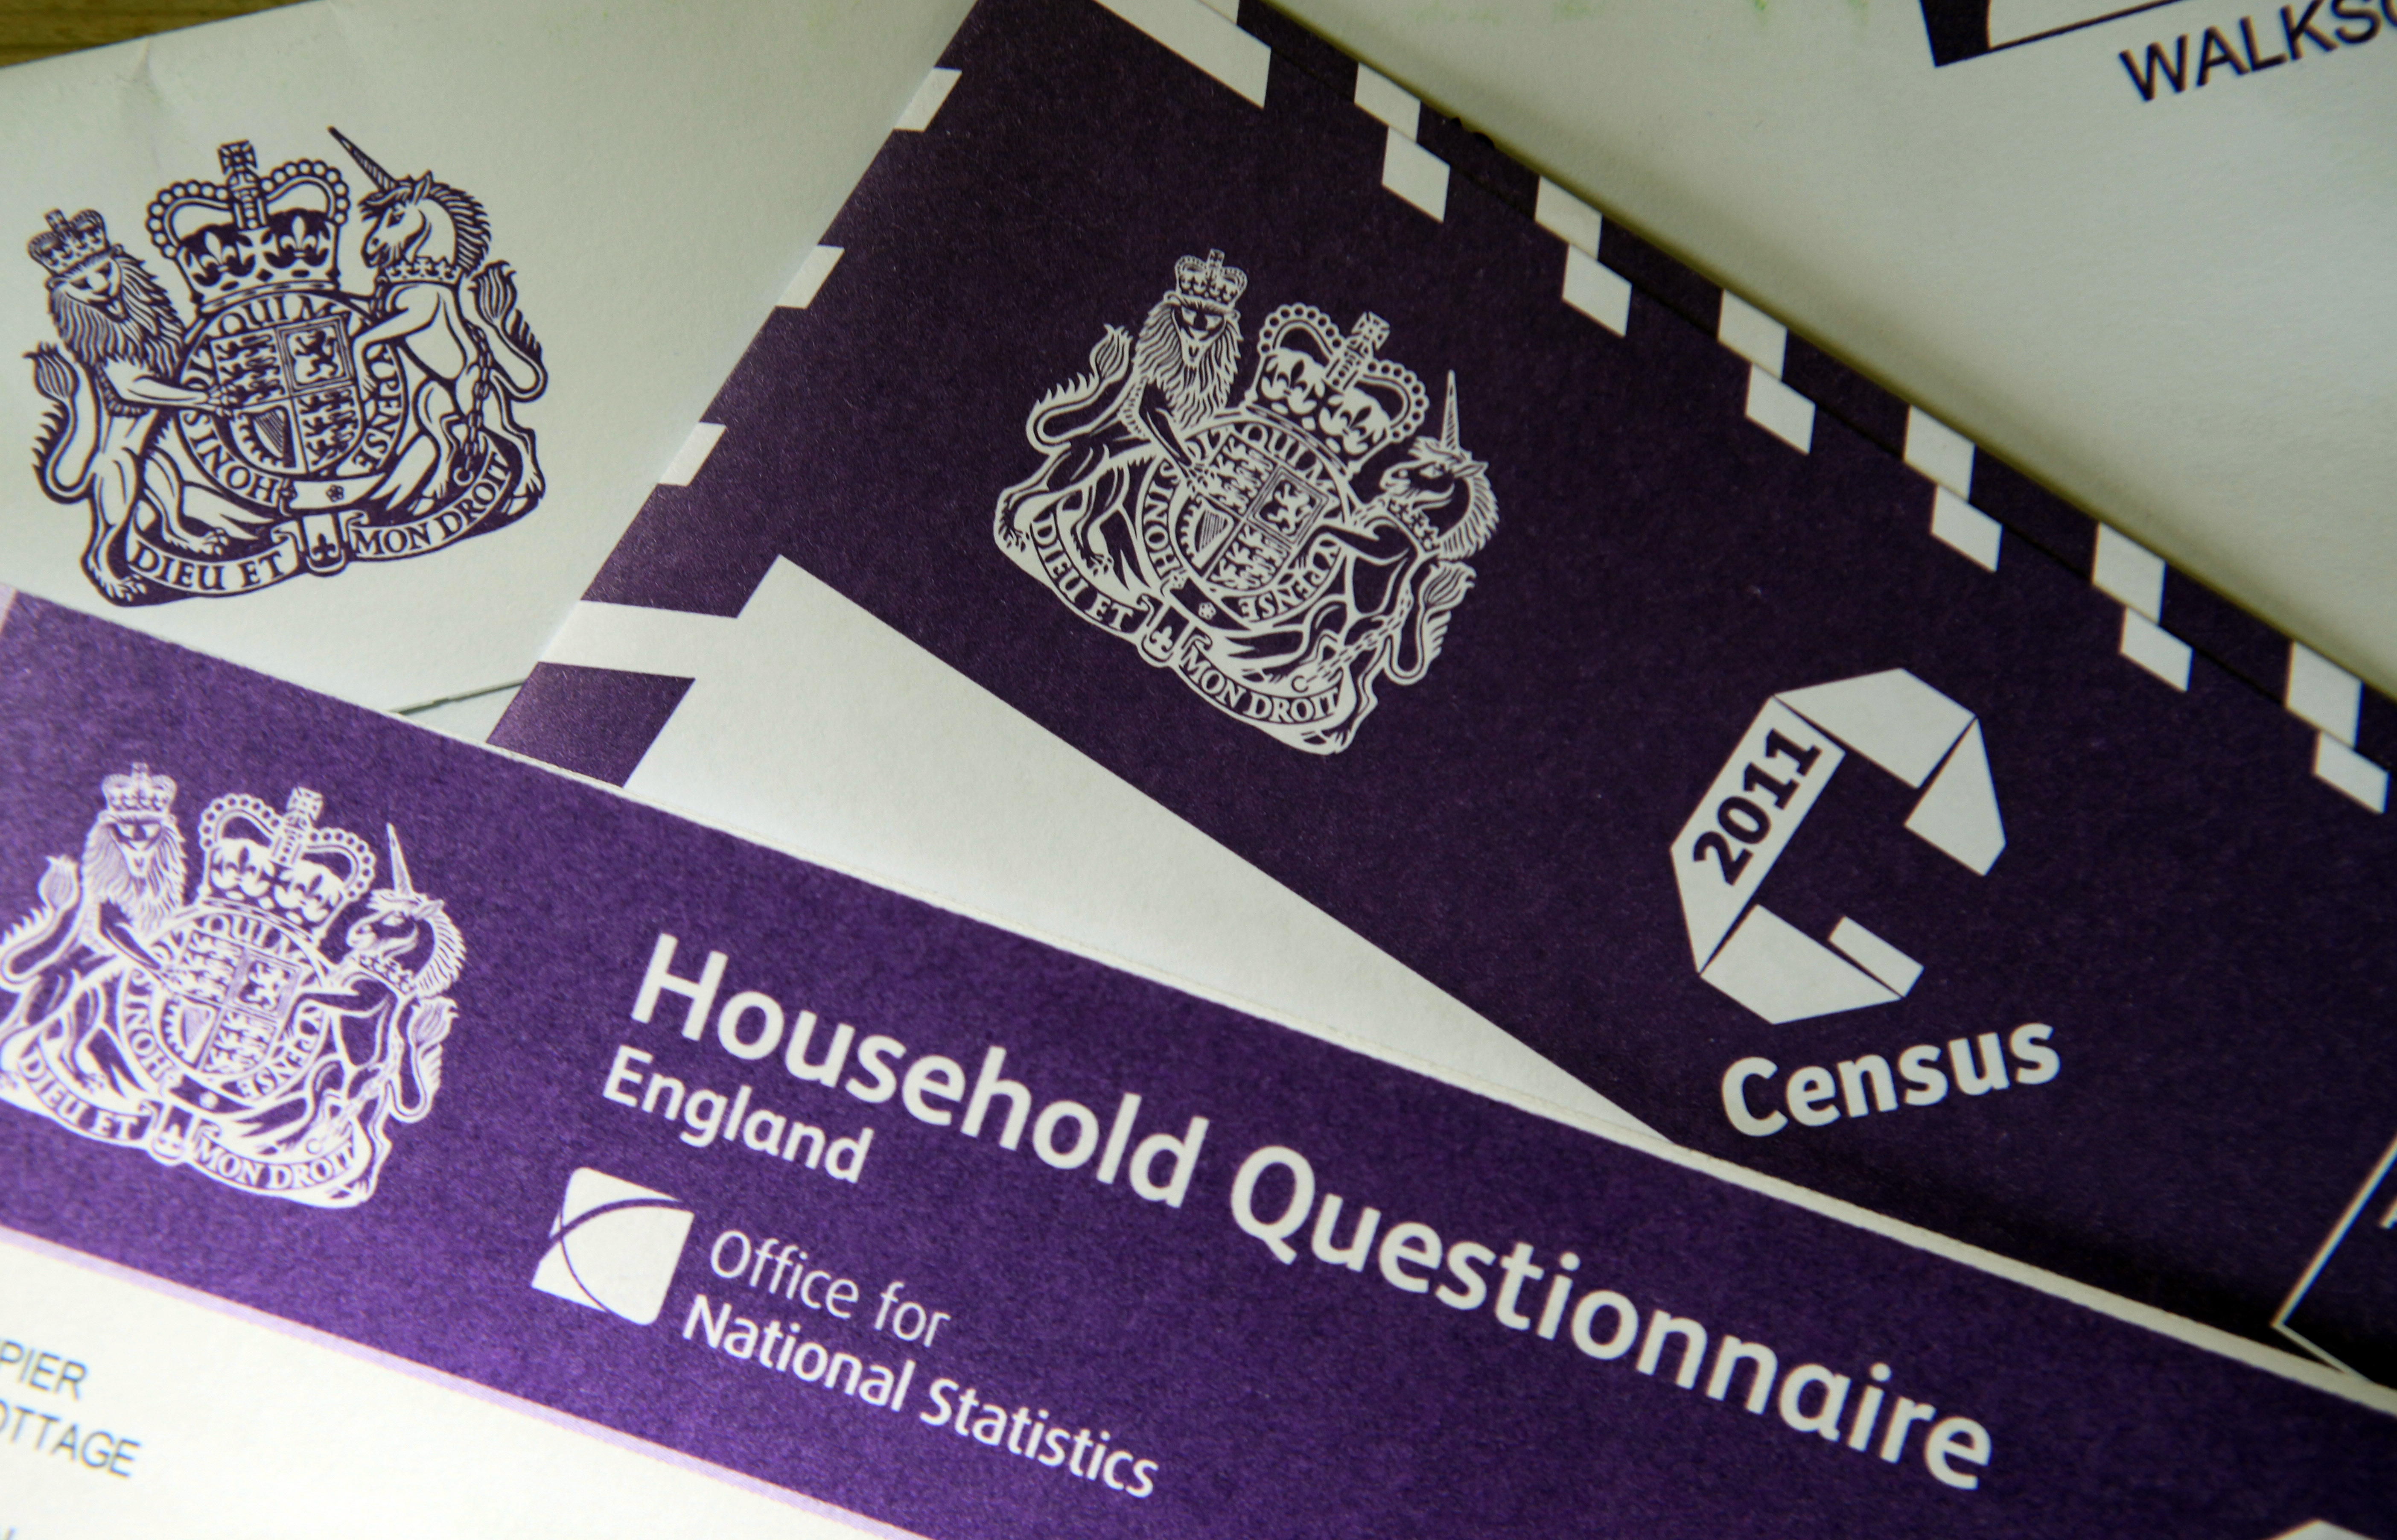 Trans people will be able to self-identify on the next census for the first time